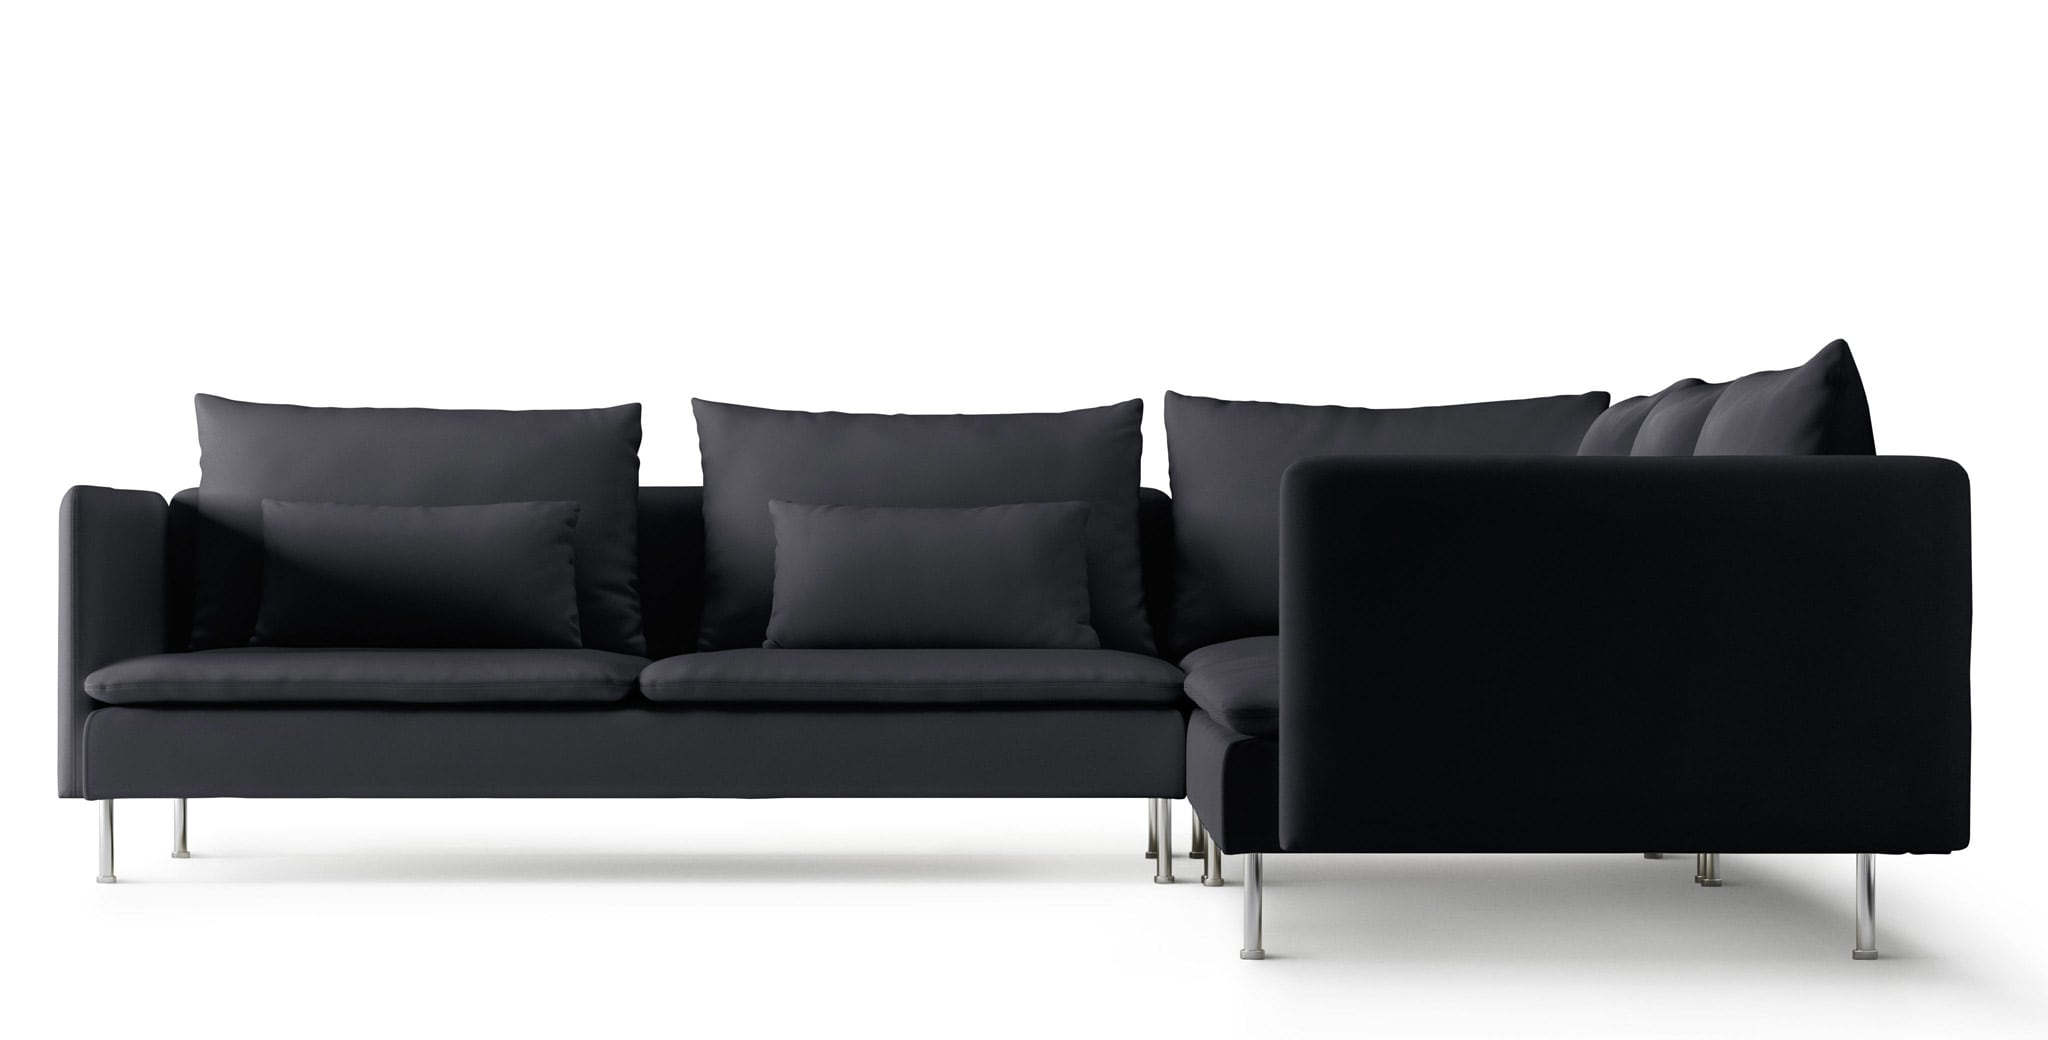 Ikea Fabric Corner Sofas | Ireland – Dublin Throughout Lucy Dark Grey Sofa Chairs (View 3 of 20)